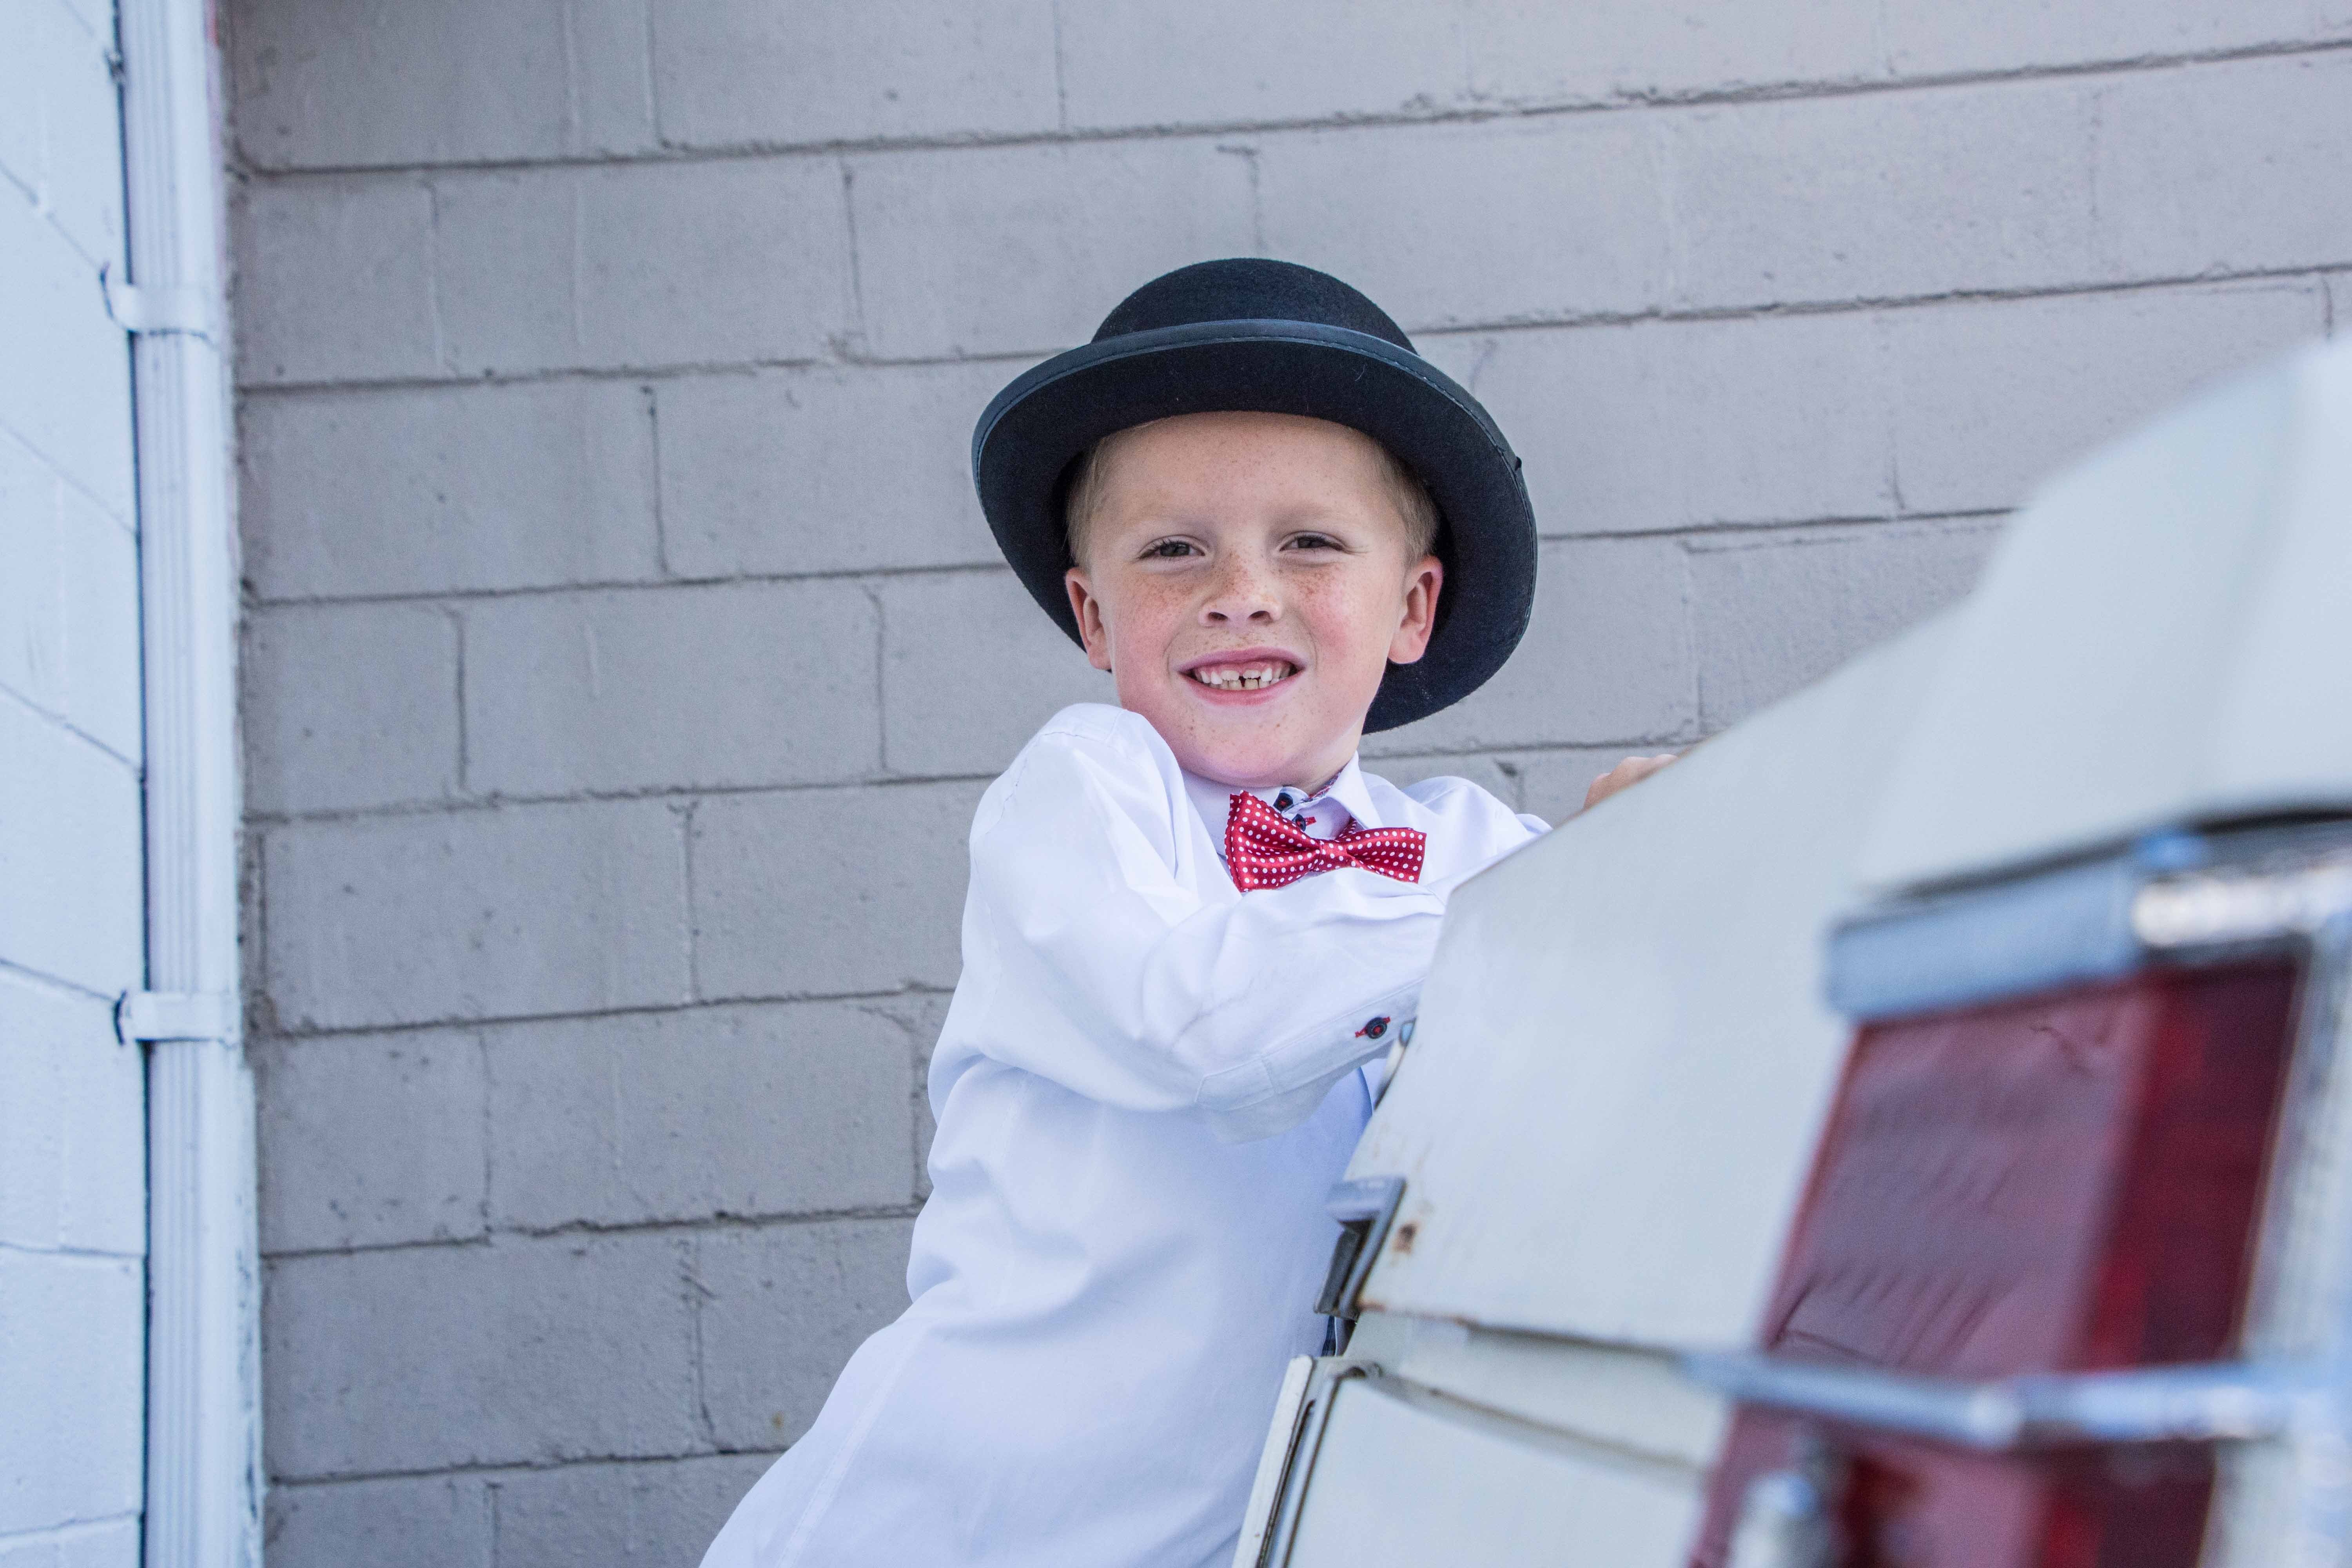 A young boy in white clothes. | Source: Unsplash